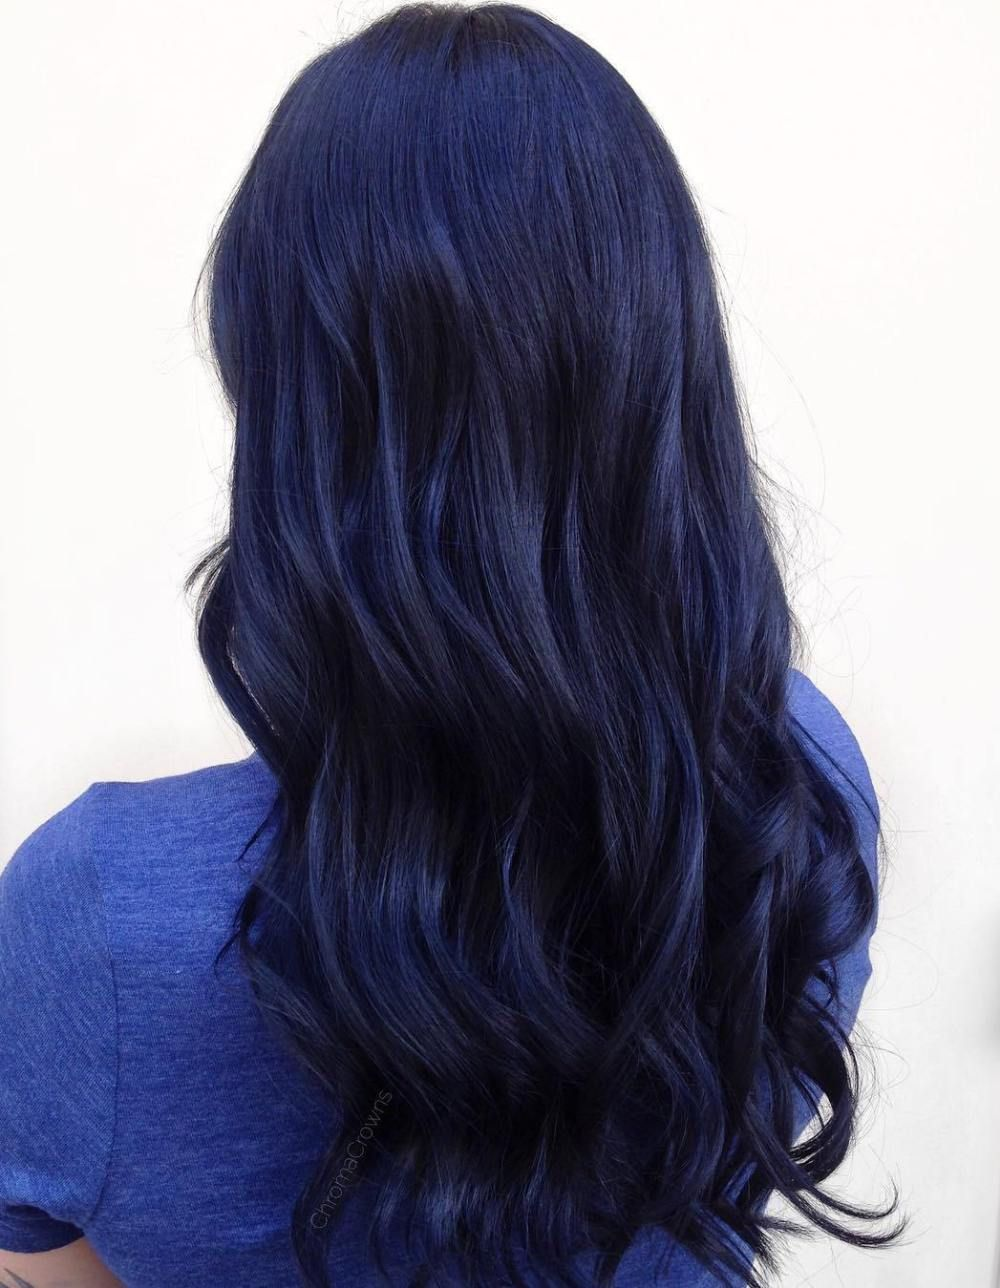 Blue Black Hair How To Get It Right In 2020 Hair Color For